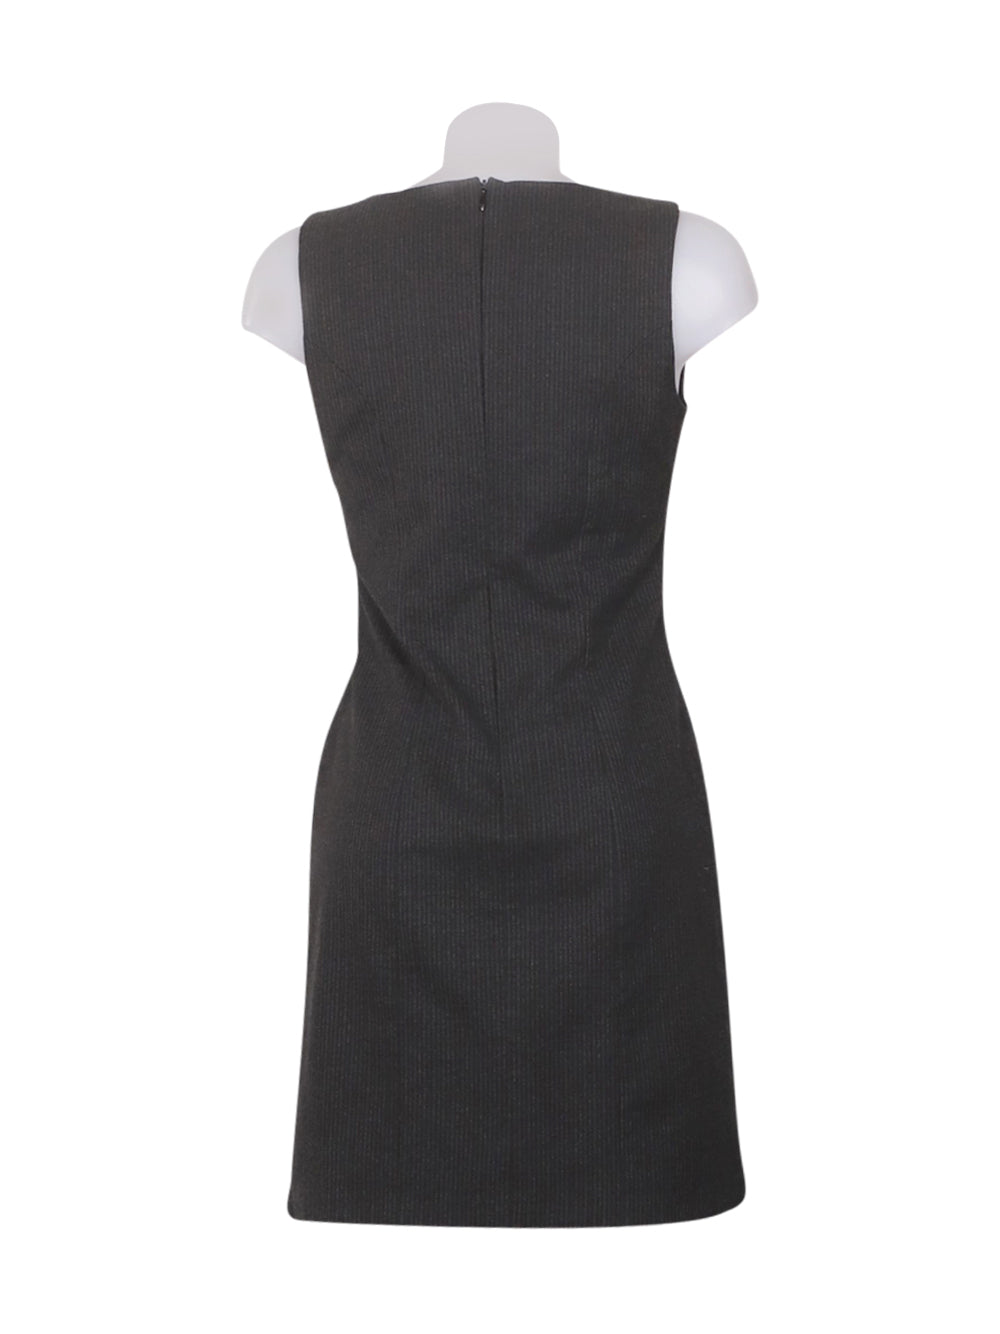 Back photo of Preloved Orsay Black Woman's dress - size 8/S